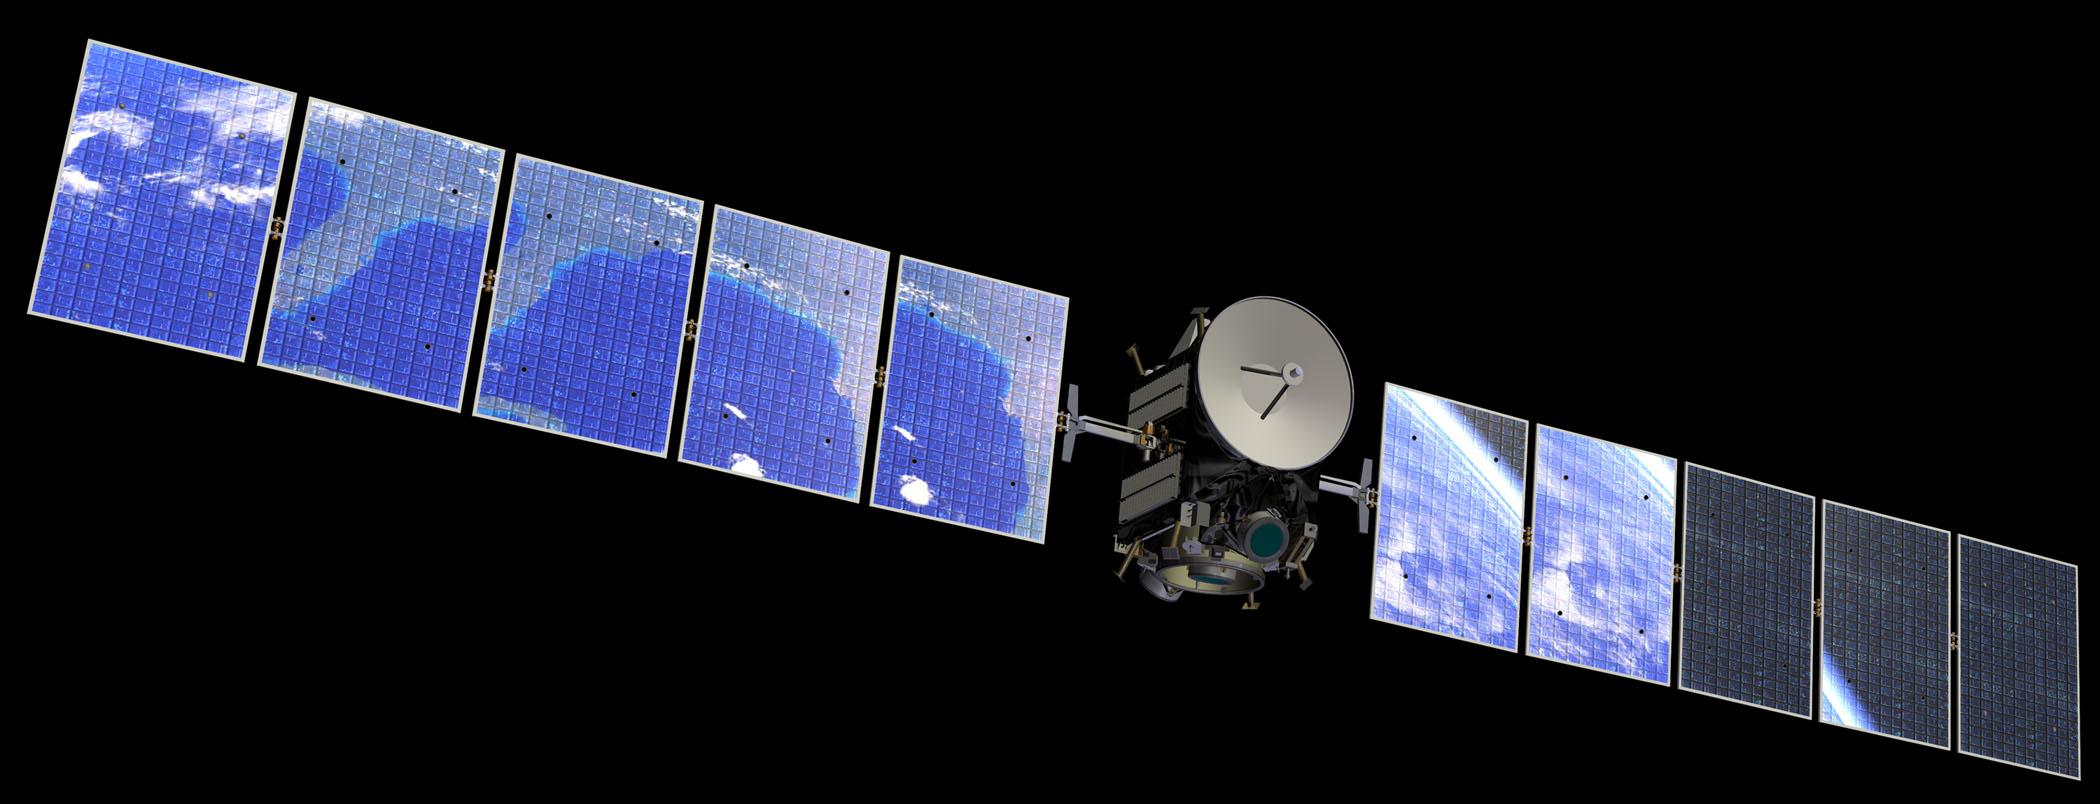 Images From The Spacecraft And Telescopes Gallery